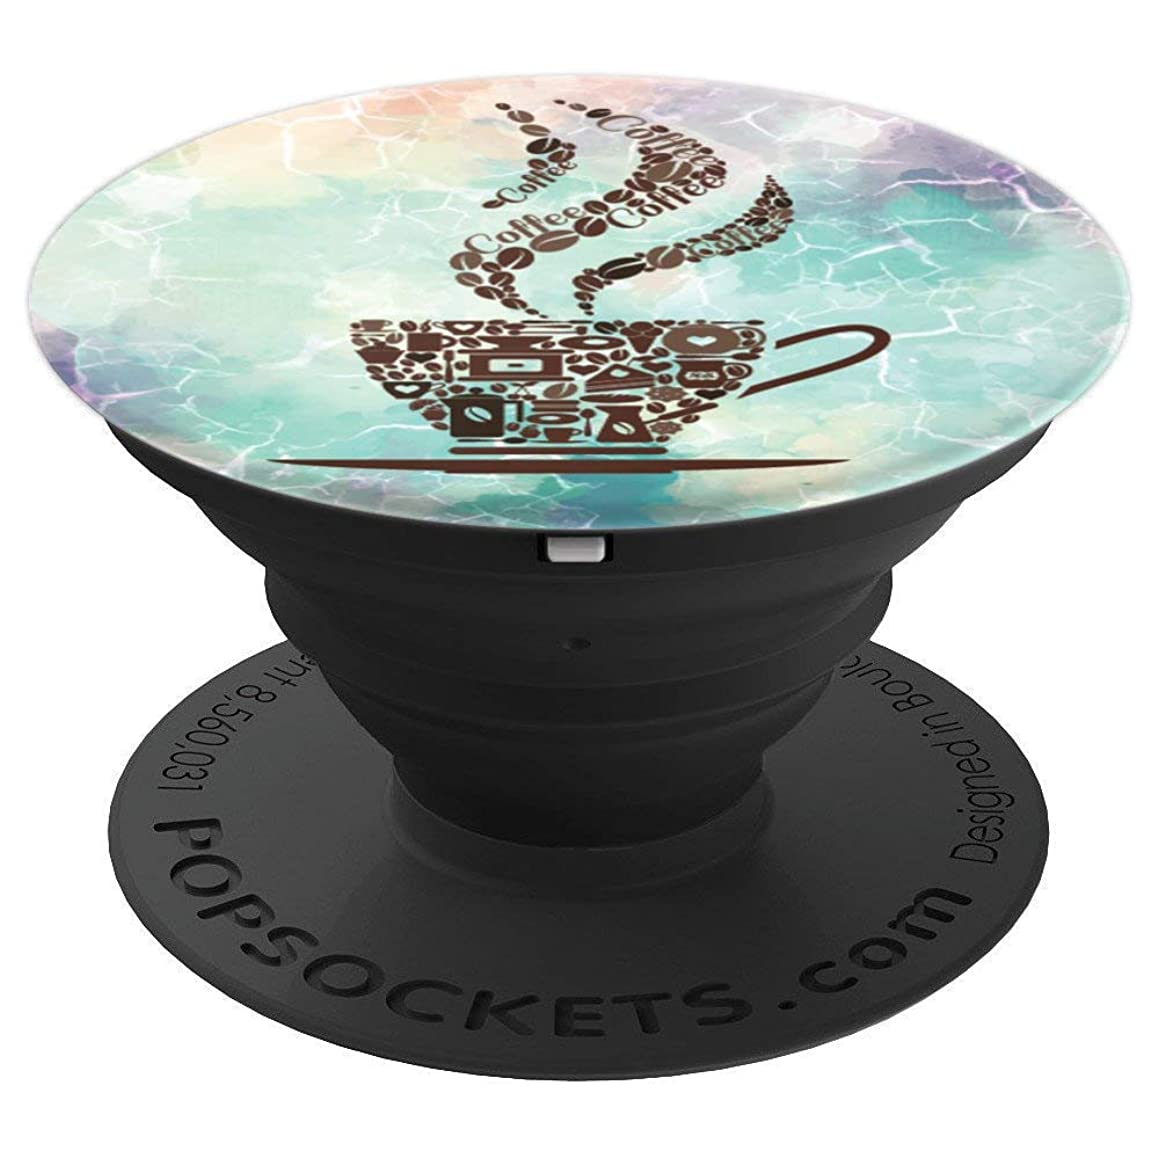 Smoke Flow Coffee Cup On Marble Design Caffeine Lovers Gifts - PopSockets Grip and Stand for Phones and Tablets